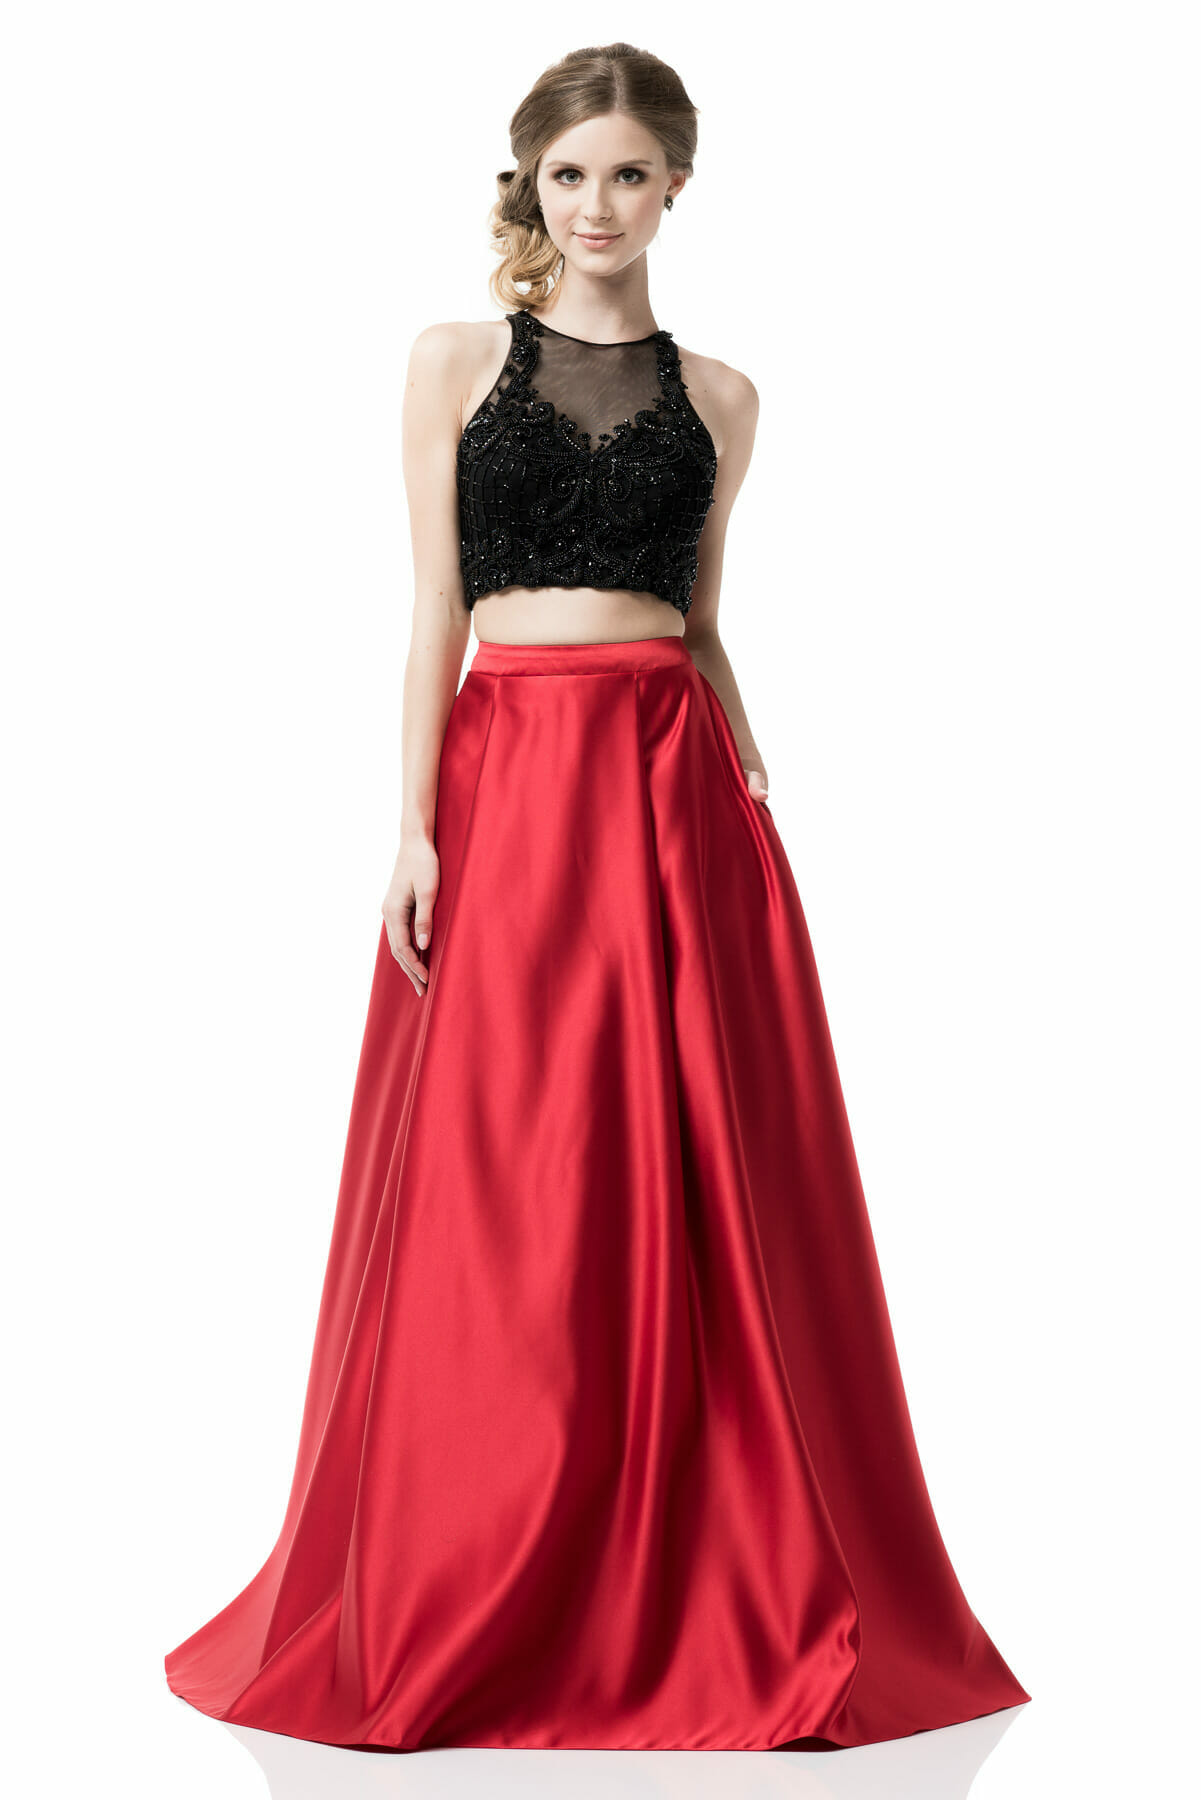 Shangri-La Dresses | Prom Dress in San Antonio, TX